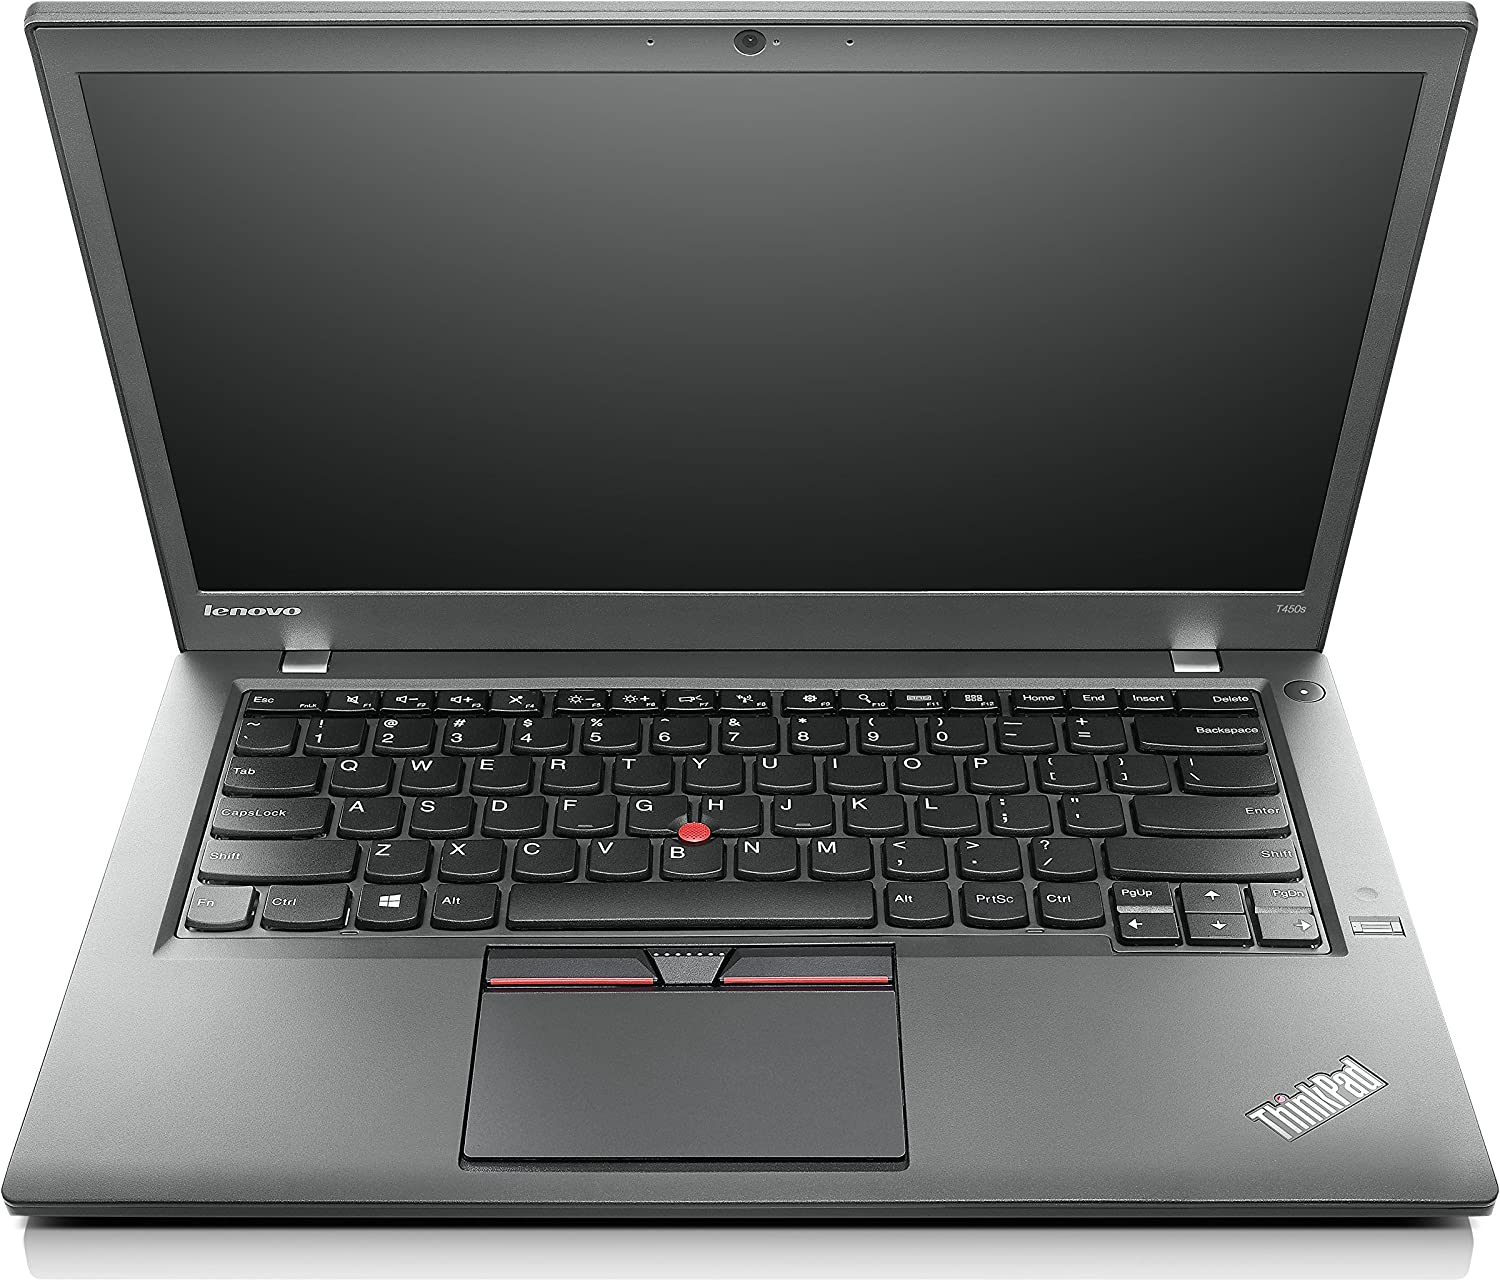 Lenovo ThinkPad T450s - 14 Inch - Intel i5-5300U 2.30GHz - 8 GB RAM - 256 GB SSD - Windows 7 Pro - 20BX001AUS